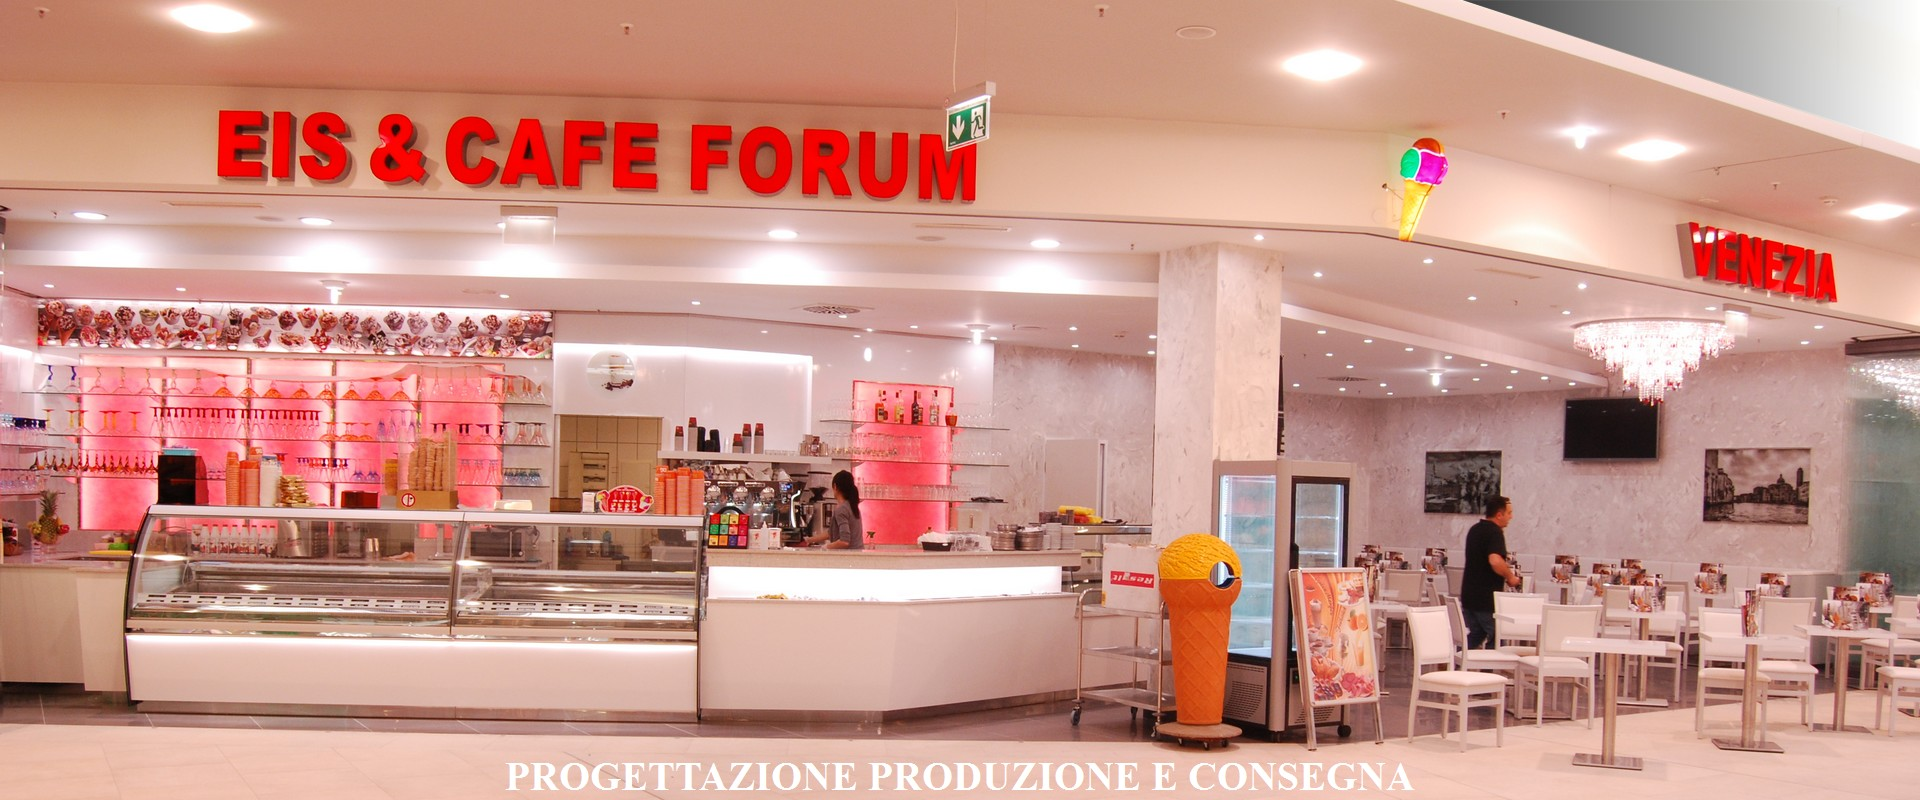 arredamento gelateria eiscafe forum